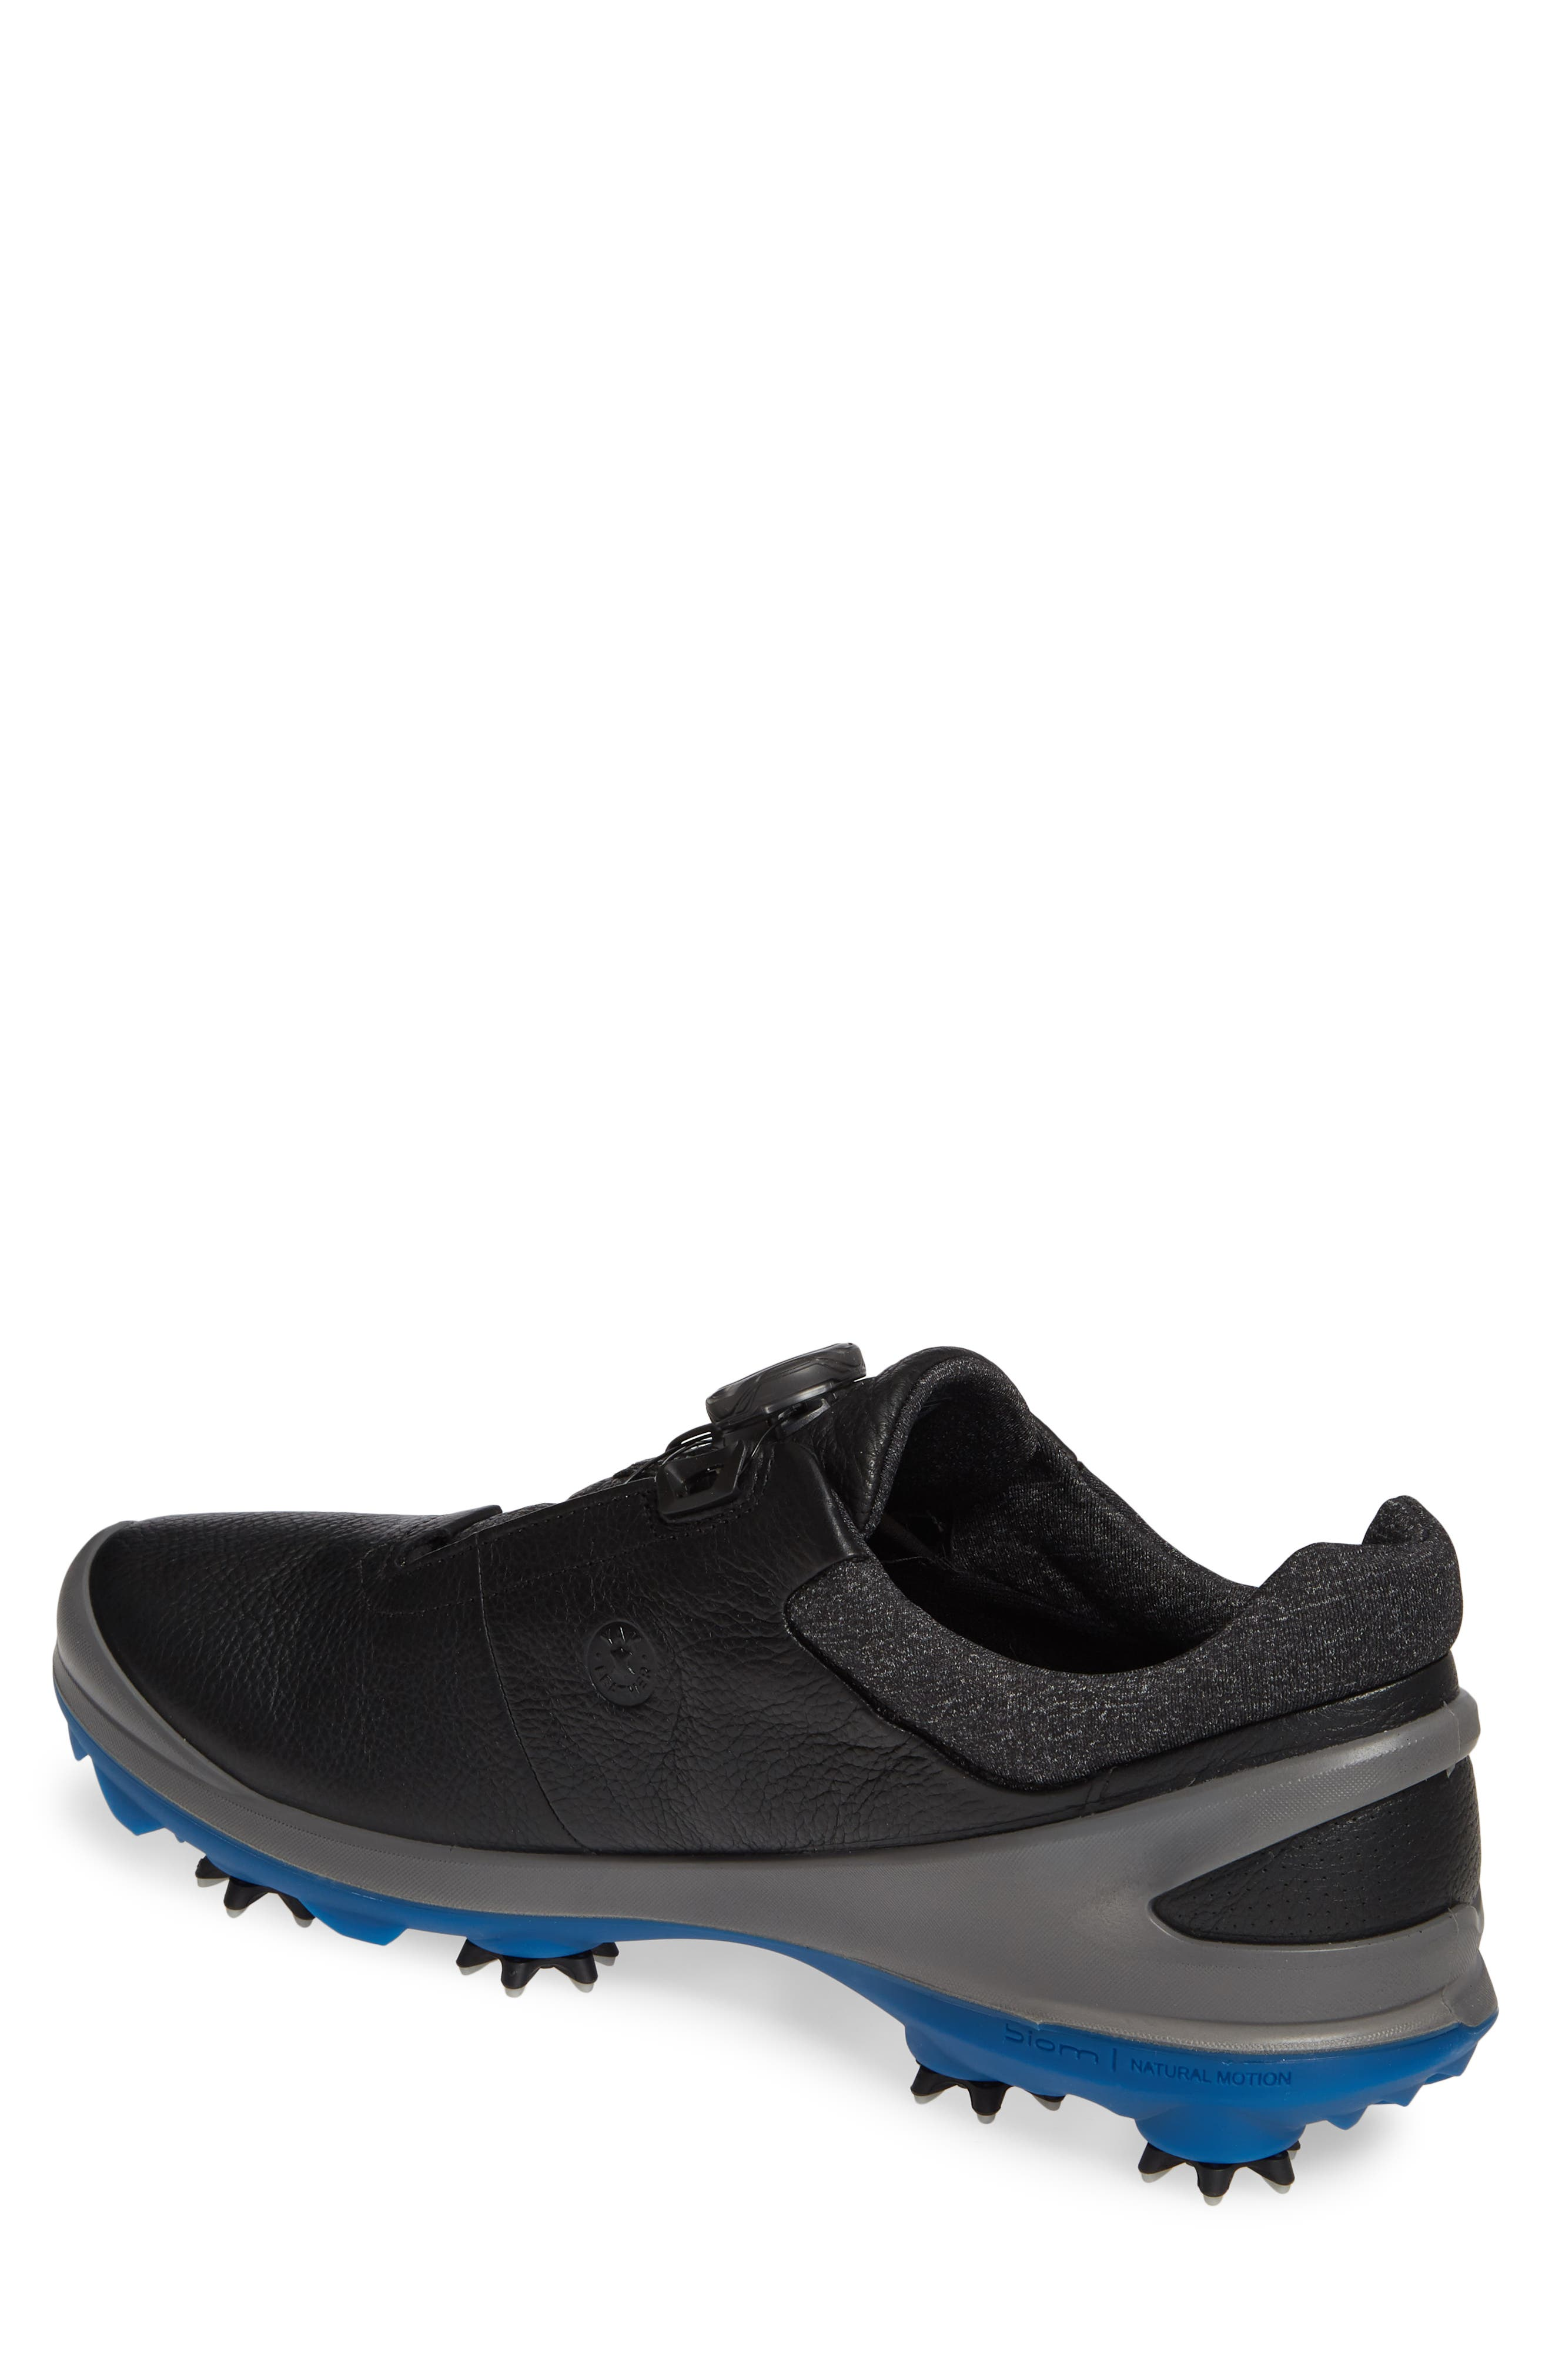 ECCO, BIOM<sup>®</sup> G 3 BOA<sup>®</sup> Gore-Tex<sup>®</sup> Golf Shoe, Alternate thumbnail 2, color, BLACK LEATHER